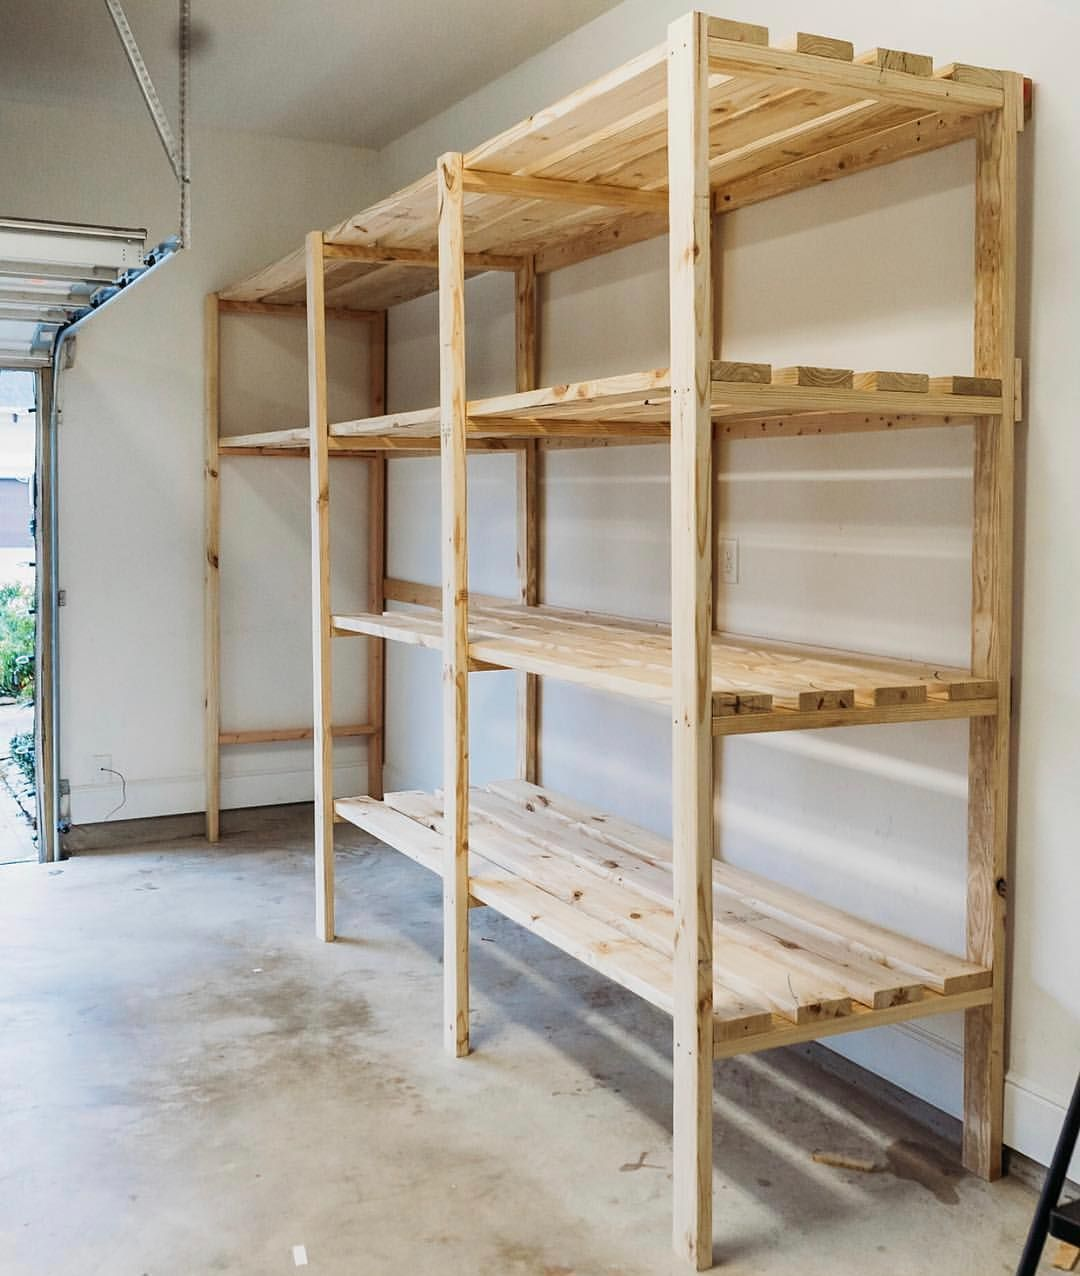 Ana White On Instagram Don T Forget About My Garage Shelving This By Handmakeshome Even Dierksbe In 2020 Garage Shelving Garage Storage Plans Diy Storage Shelves